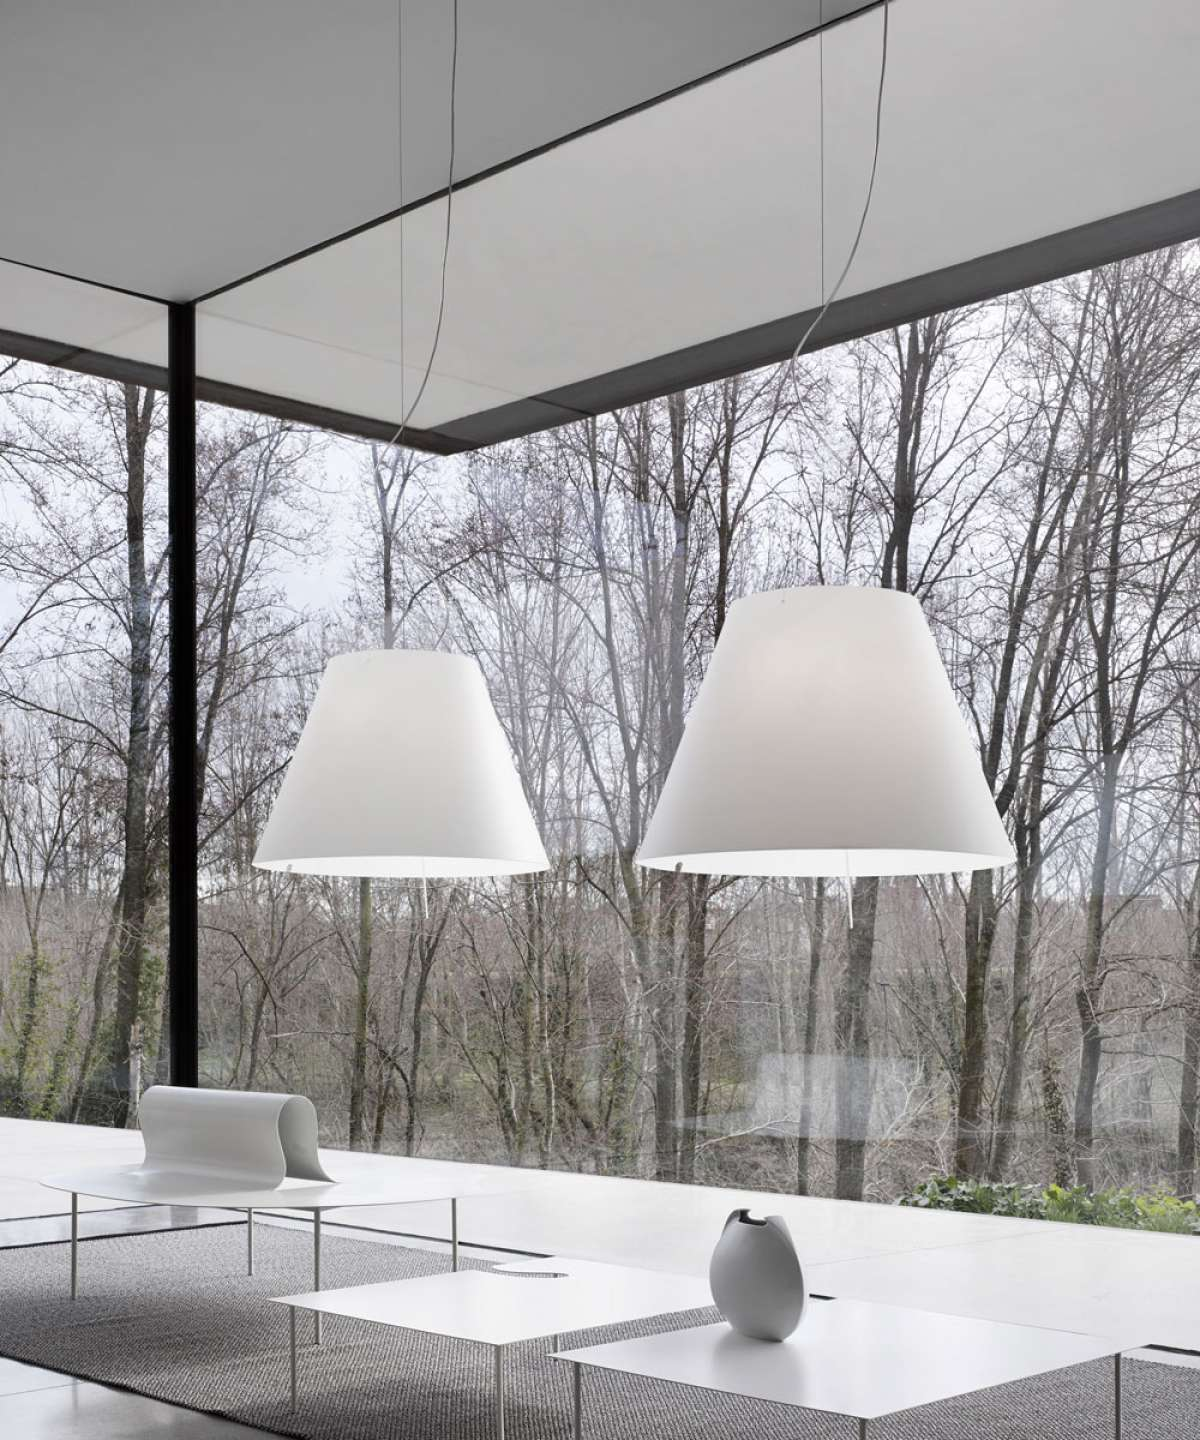 Grande Costanza Suspension Lamp - As visible as it is lightweight and balanced. The thin polycarbonate shade emits a pleasant glow that brings warmth and brightness to domestic and public spaces. | Matter of Stuff